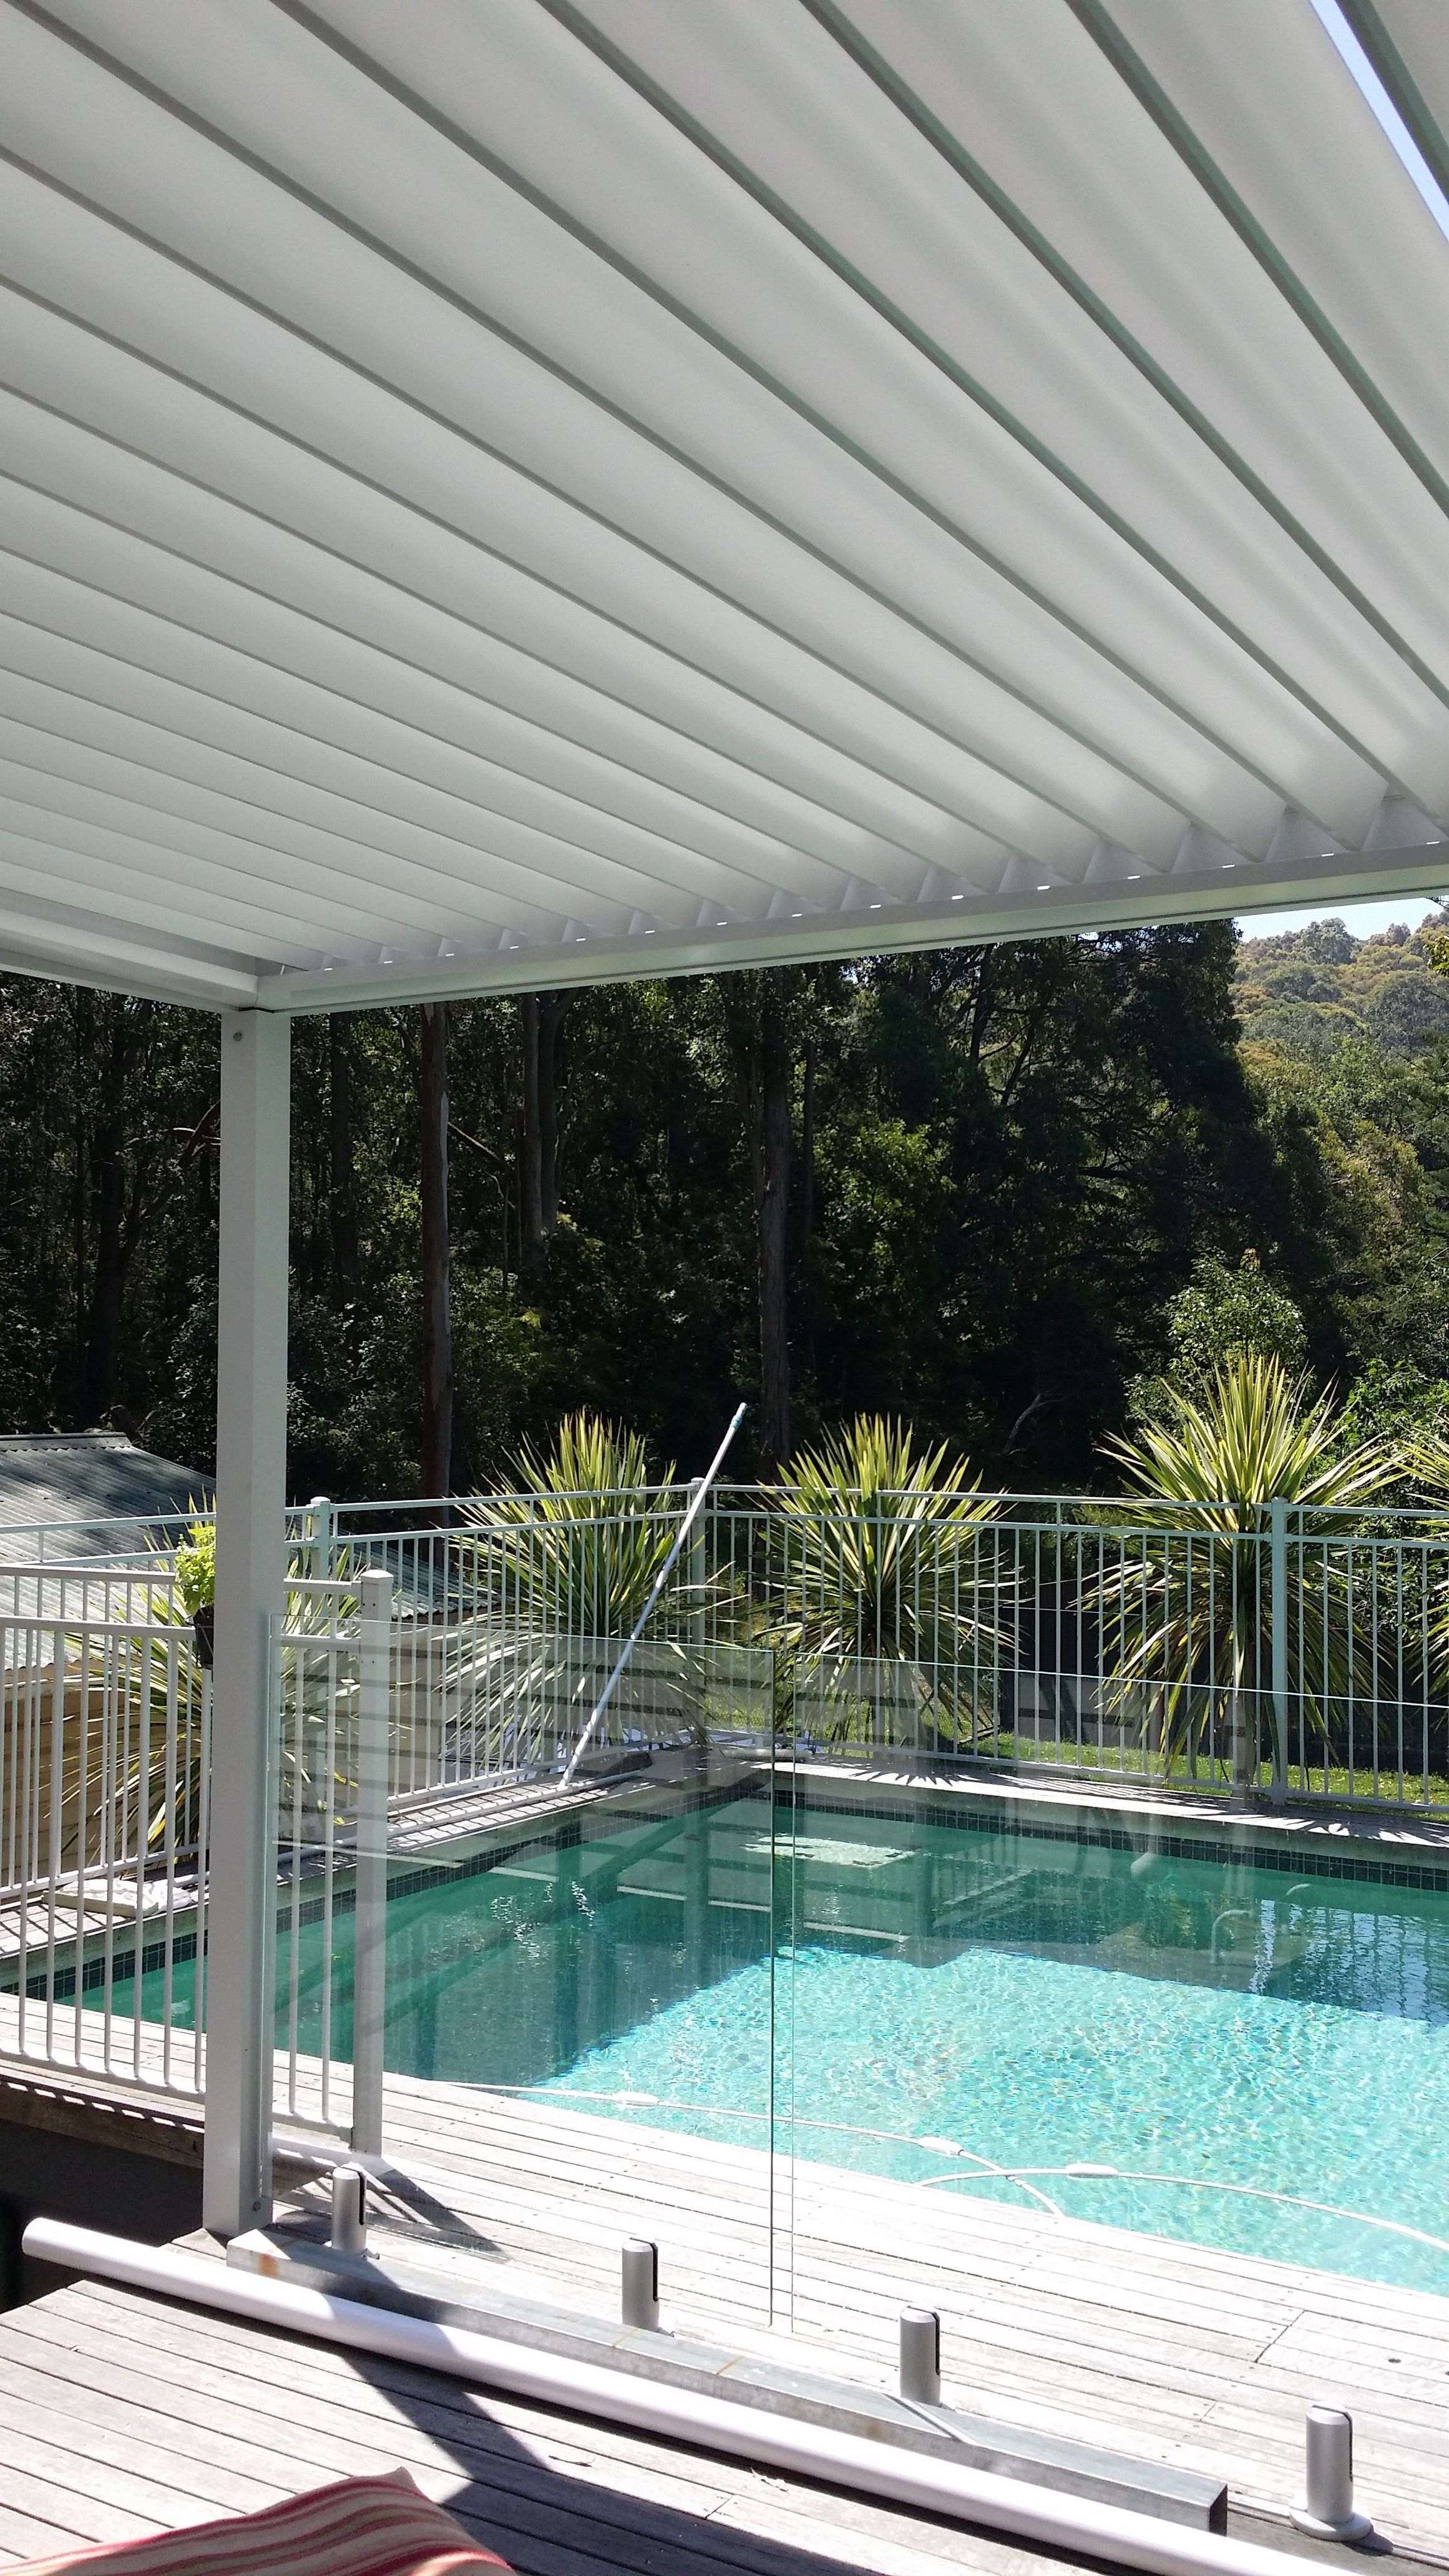 timber deck with glass handrail for pool safety and great vision